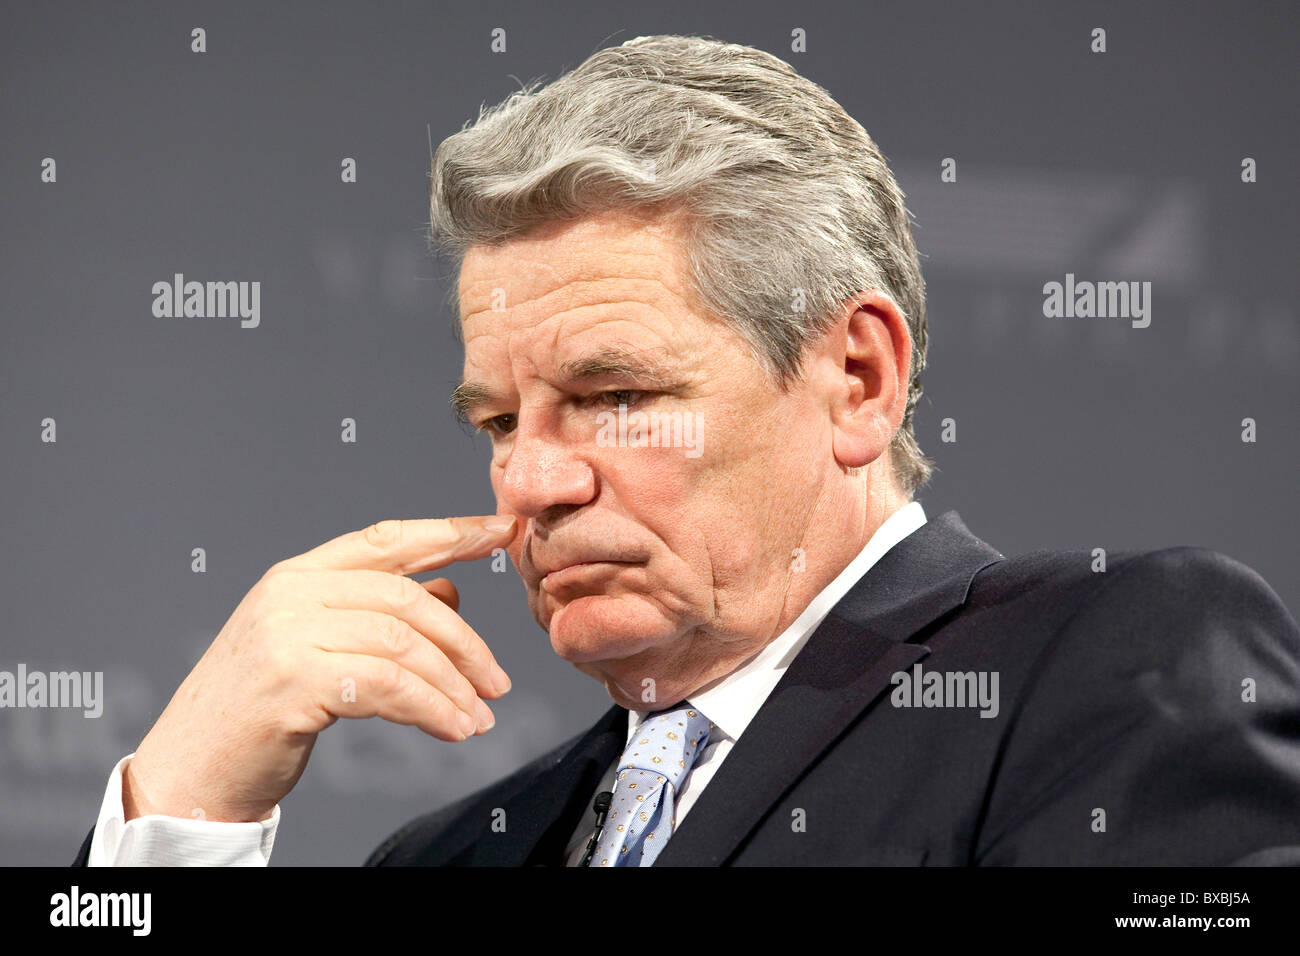 Joachim Gauck, evangelical pastor and human rights activist, GDR civil-rights-activist, in Passau, Bavaria, Germany, - Stock Image